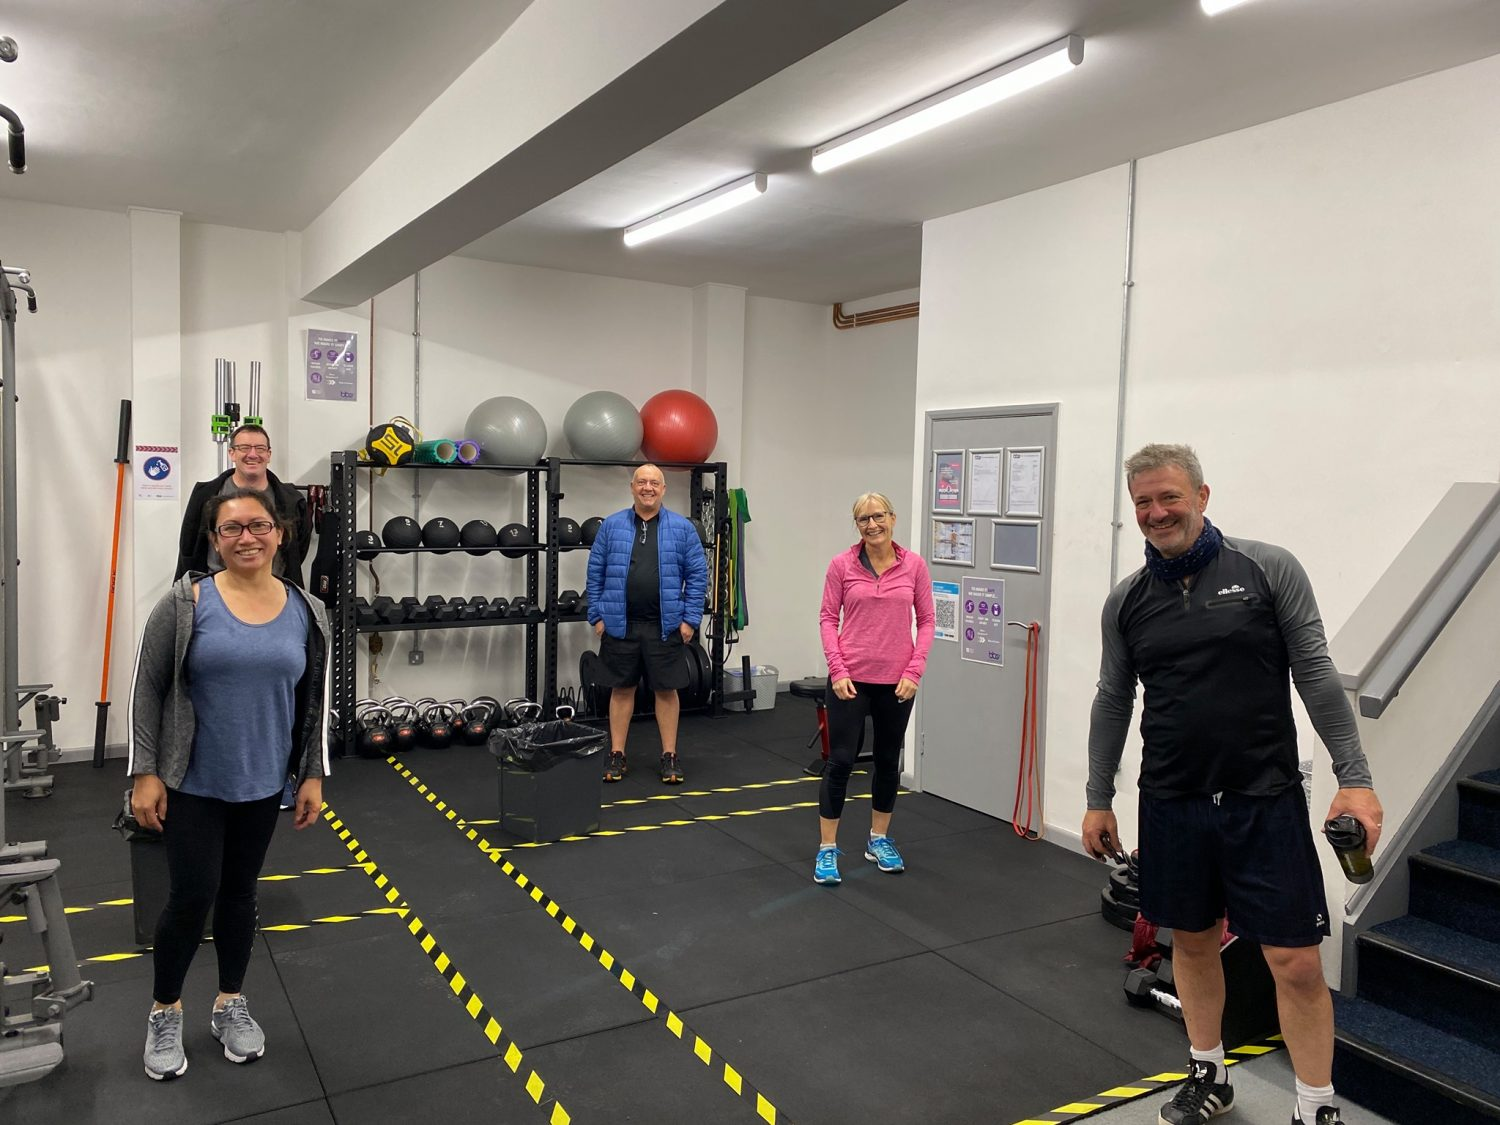 Body Transformation Centre has moved